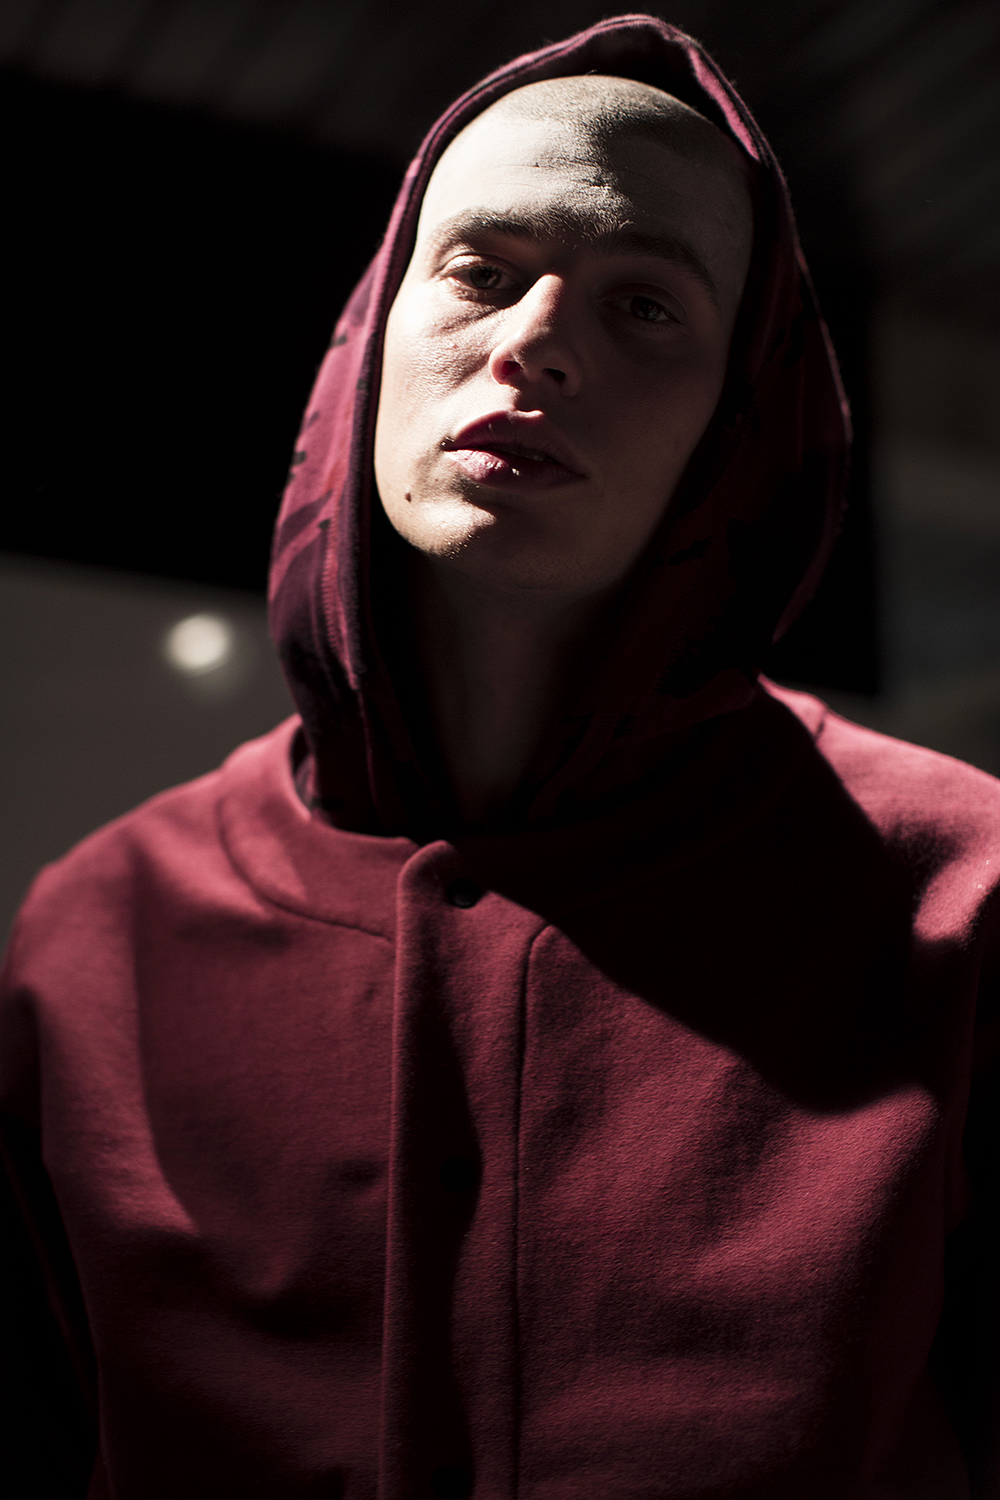 London Collections LCM-Maharishi-Burgundy Hoodie Autumn Winter 2016 Lillie Eiger.png